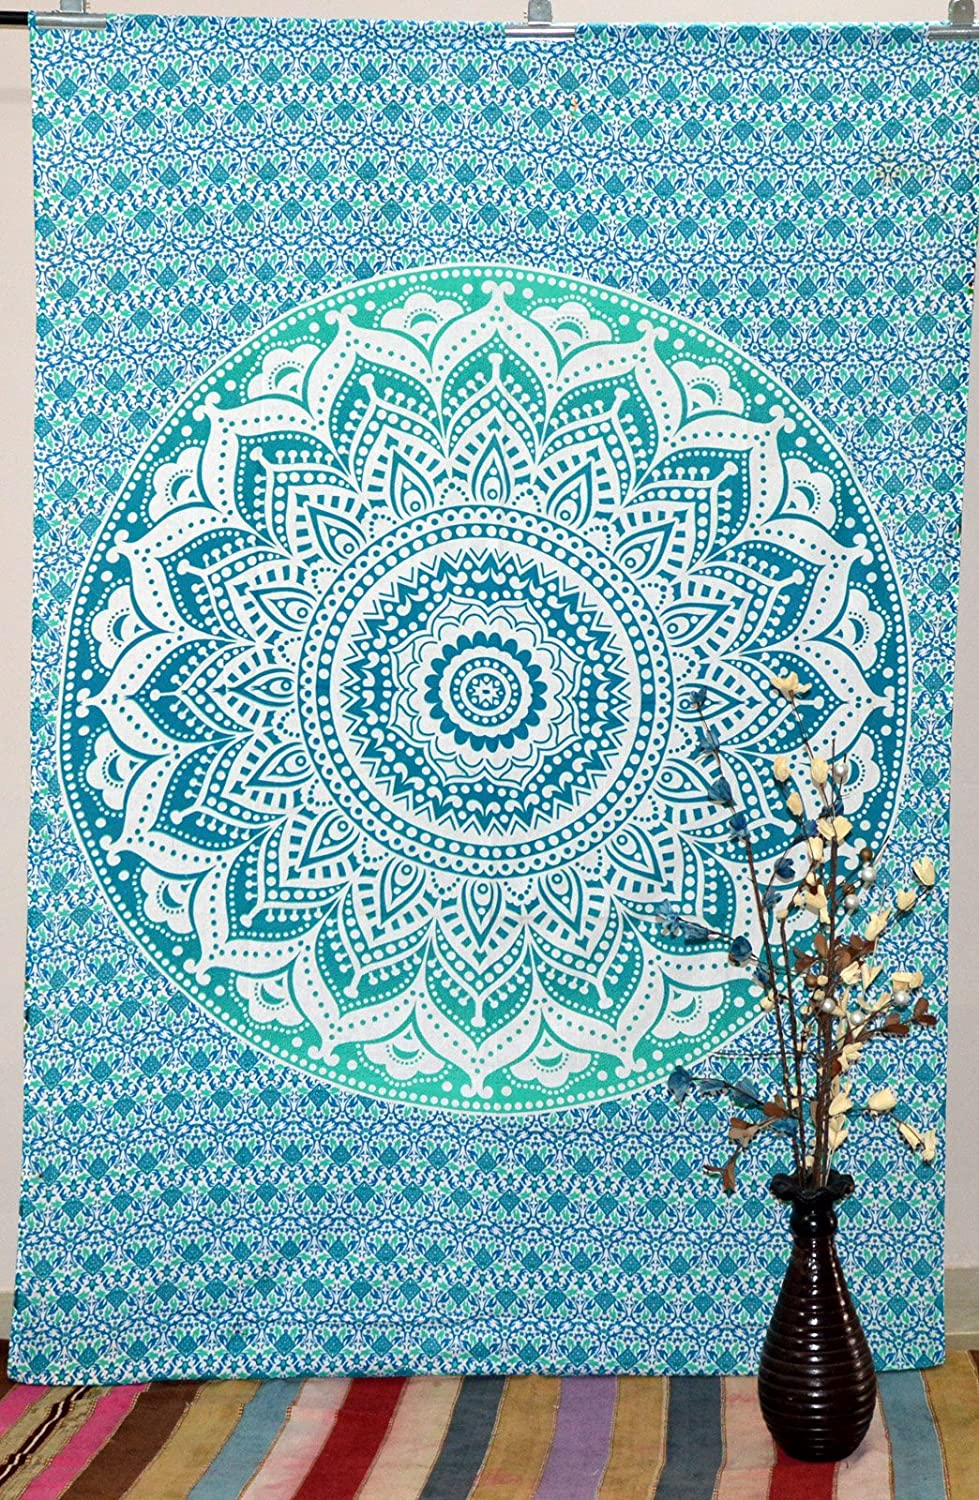 Indian Mandala Wall Twin Tapestry Throw Tapestries Hippie Wall Hanging Bed Cover Art